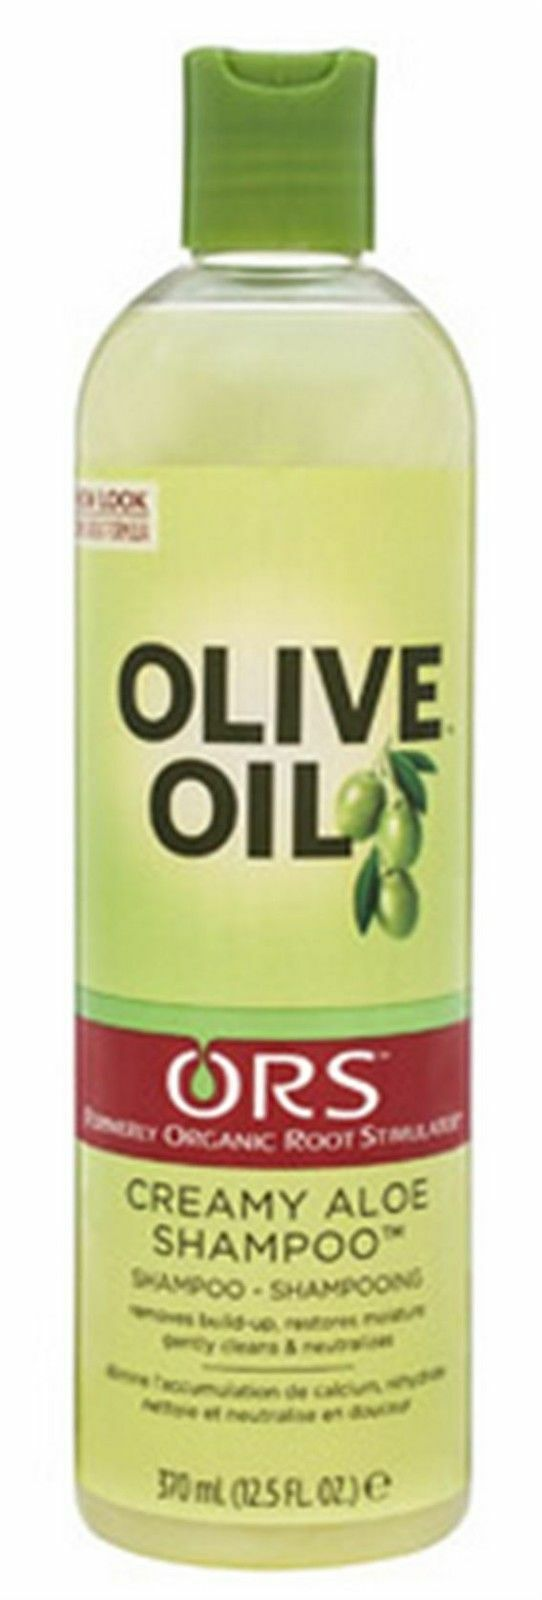 Special Offers: ORS : Olive Oil Creamy Aloe Shampoo 12.5 Oz